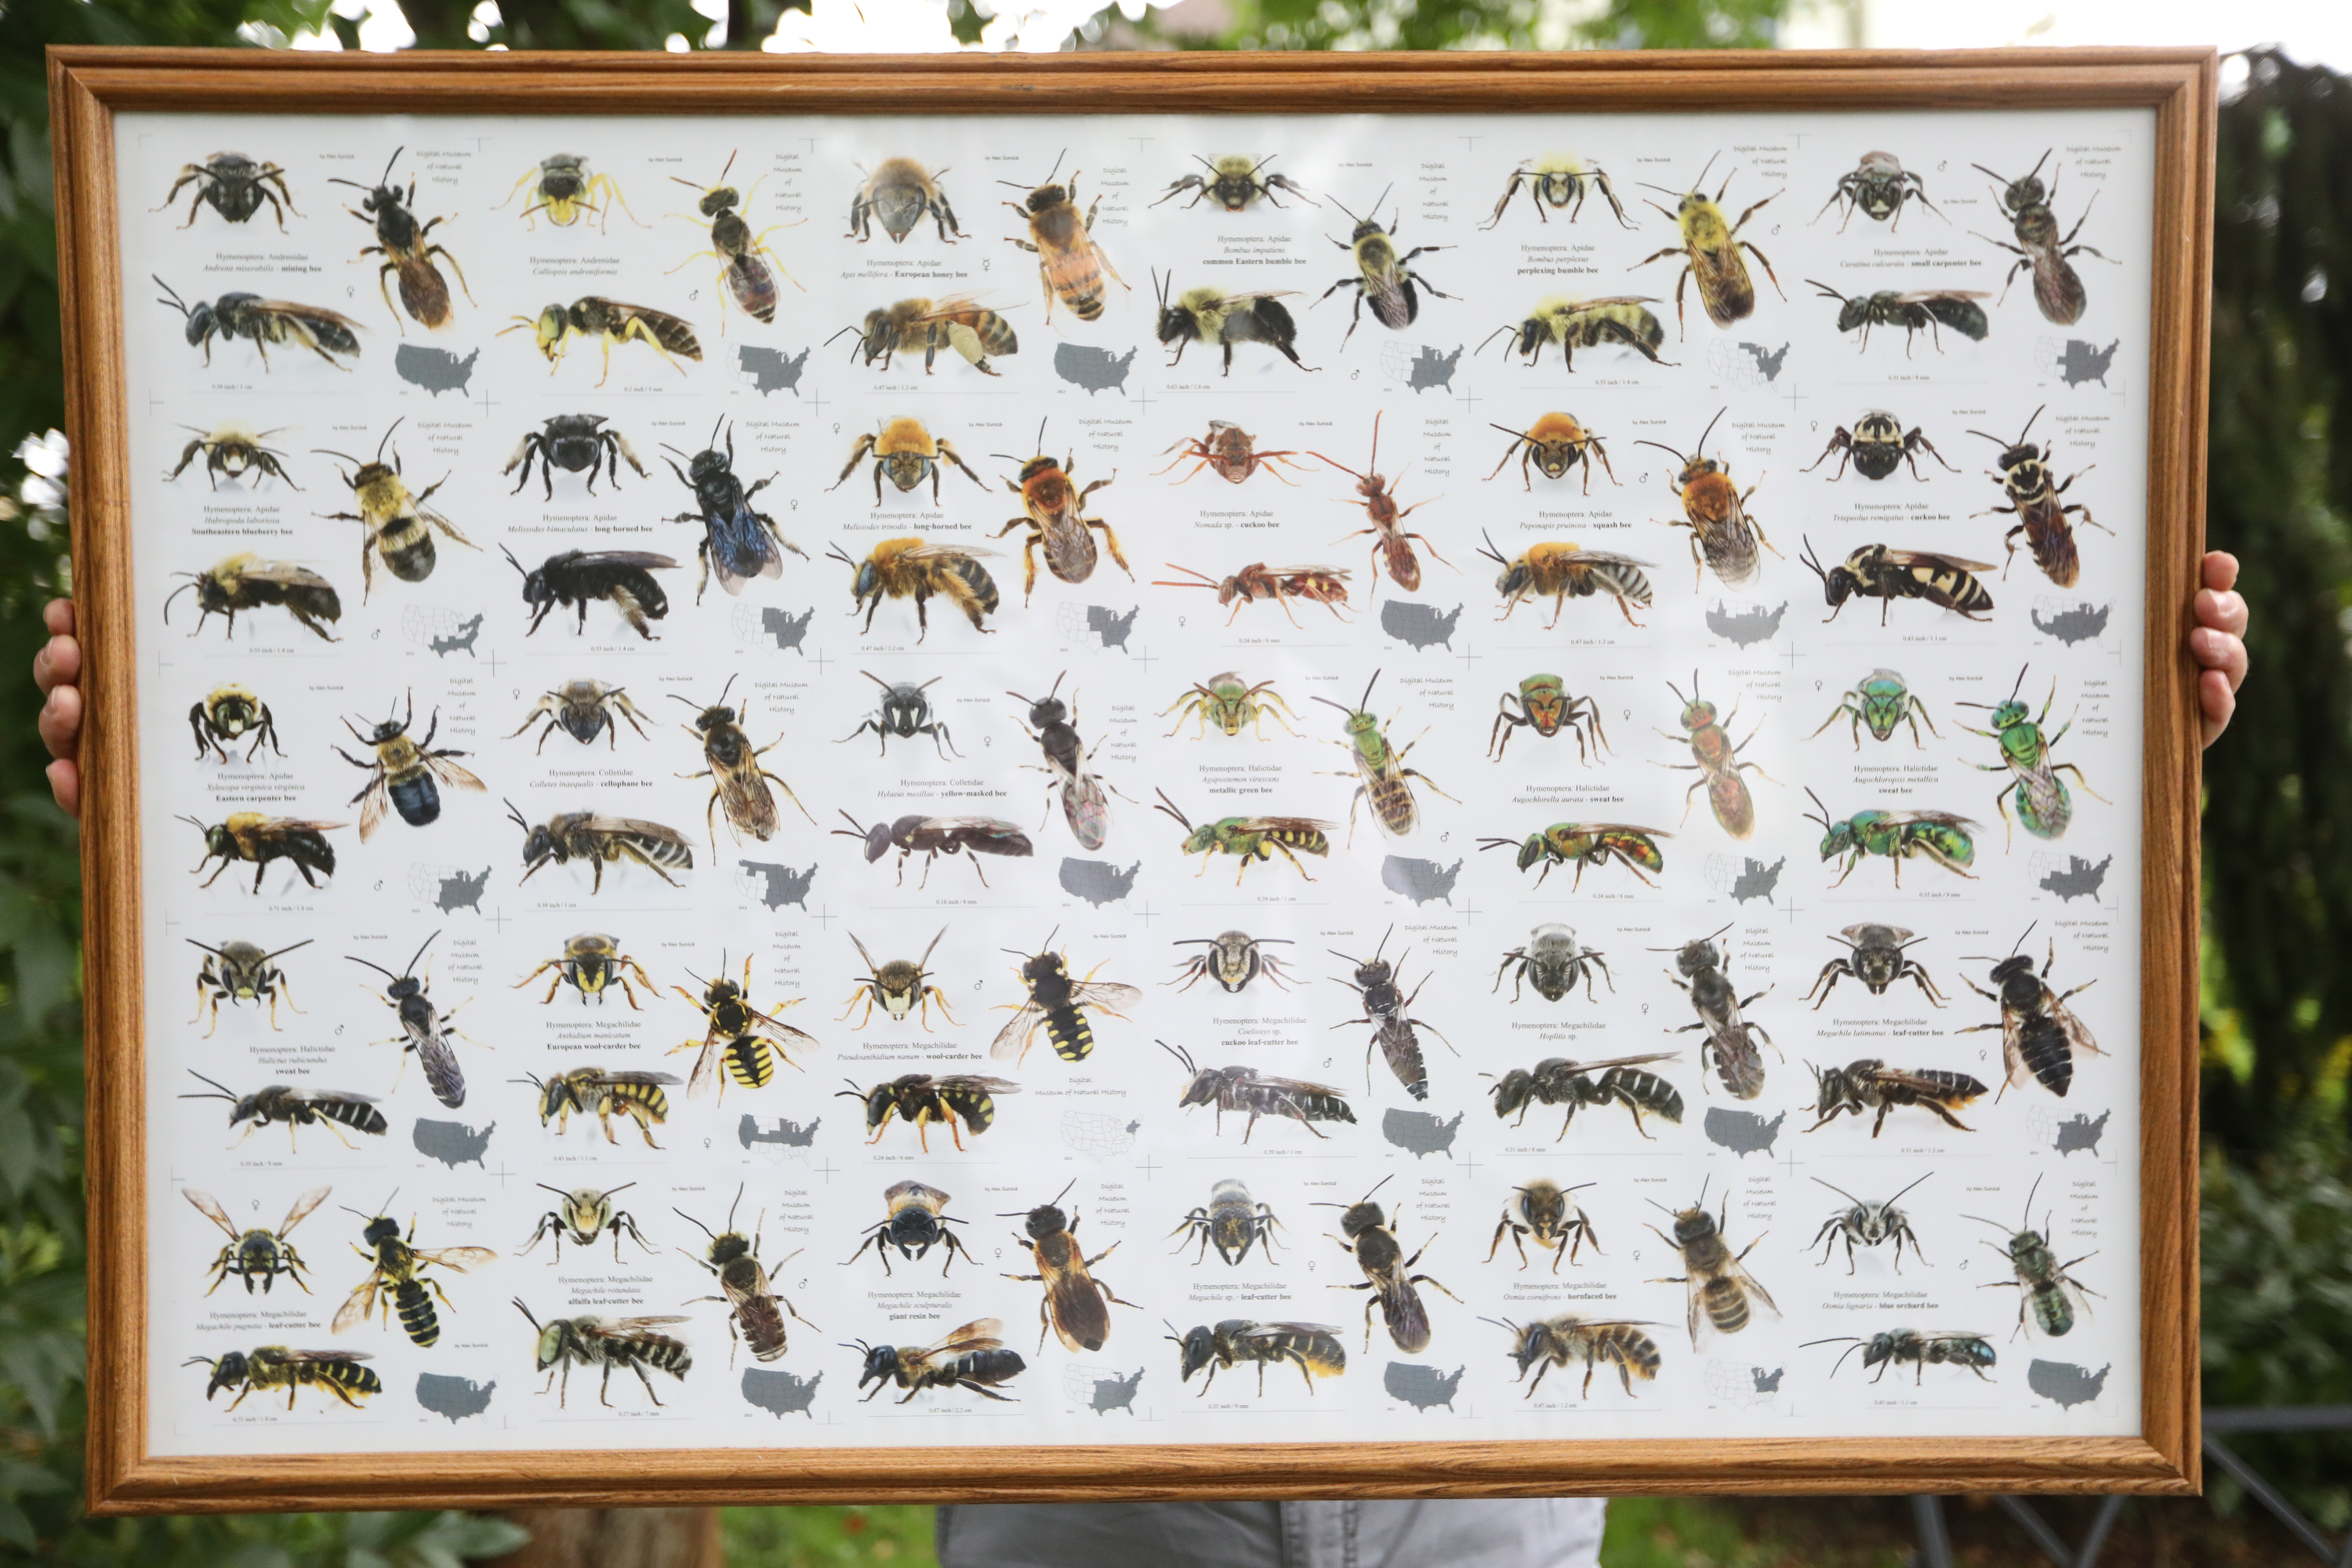 Keith Snyder holds up a print of pollinating insects. Experts say stings are often falsely attributed to bees, who resemble many other species of similar insects.